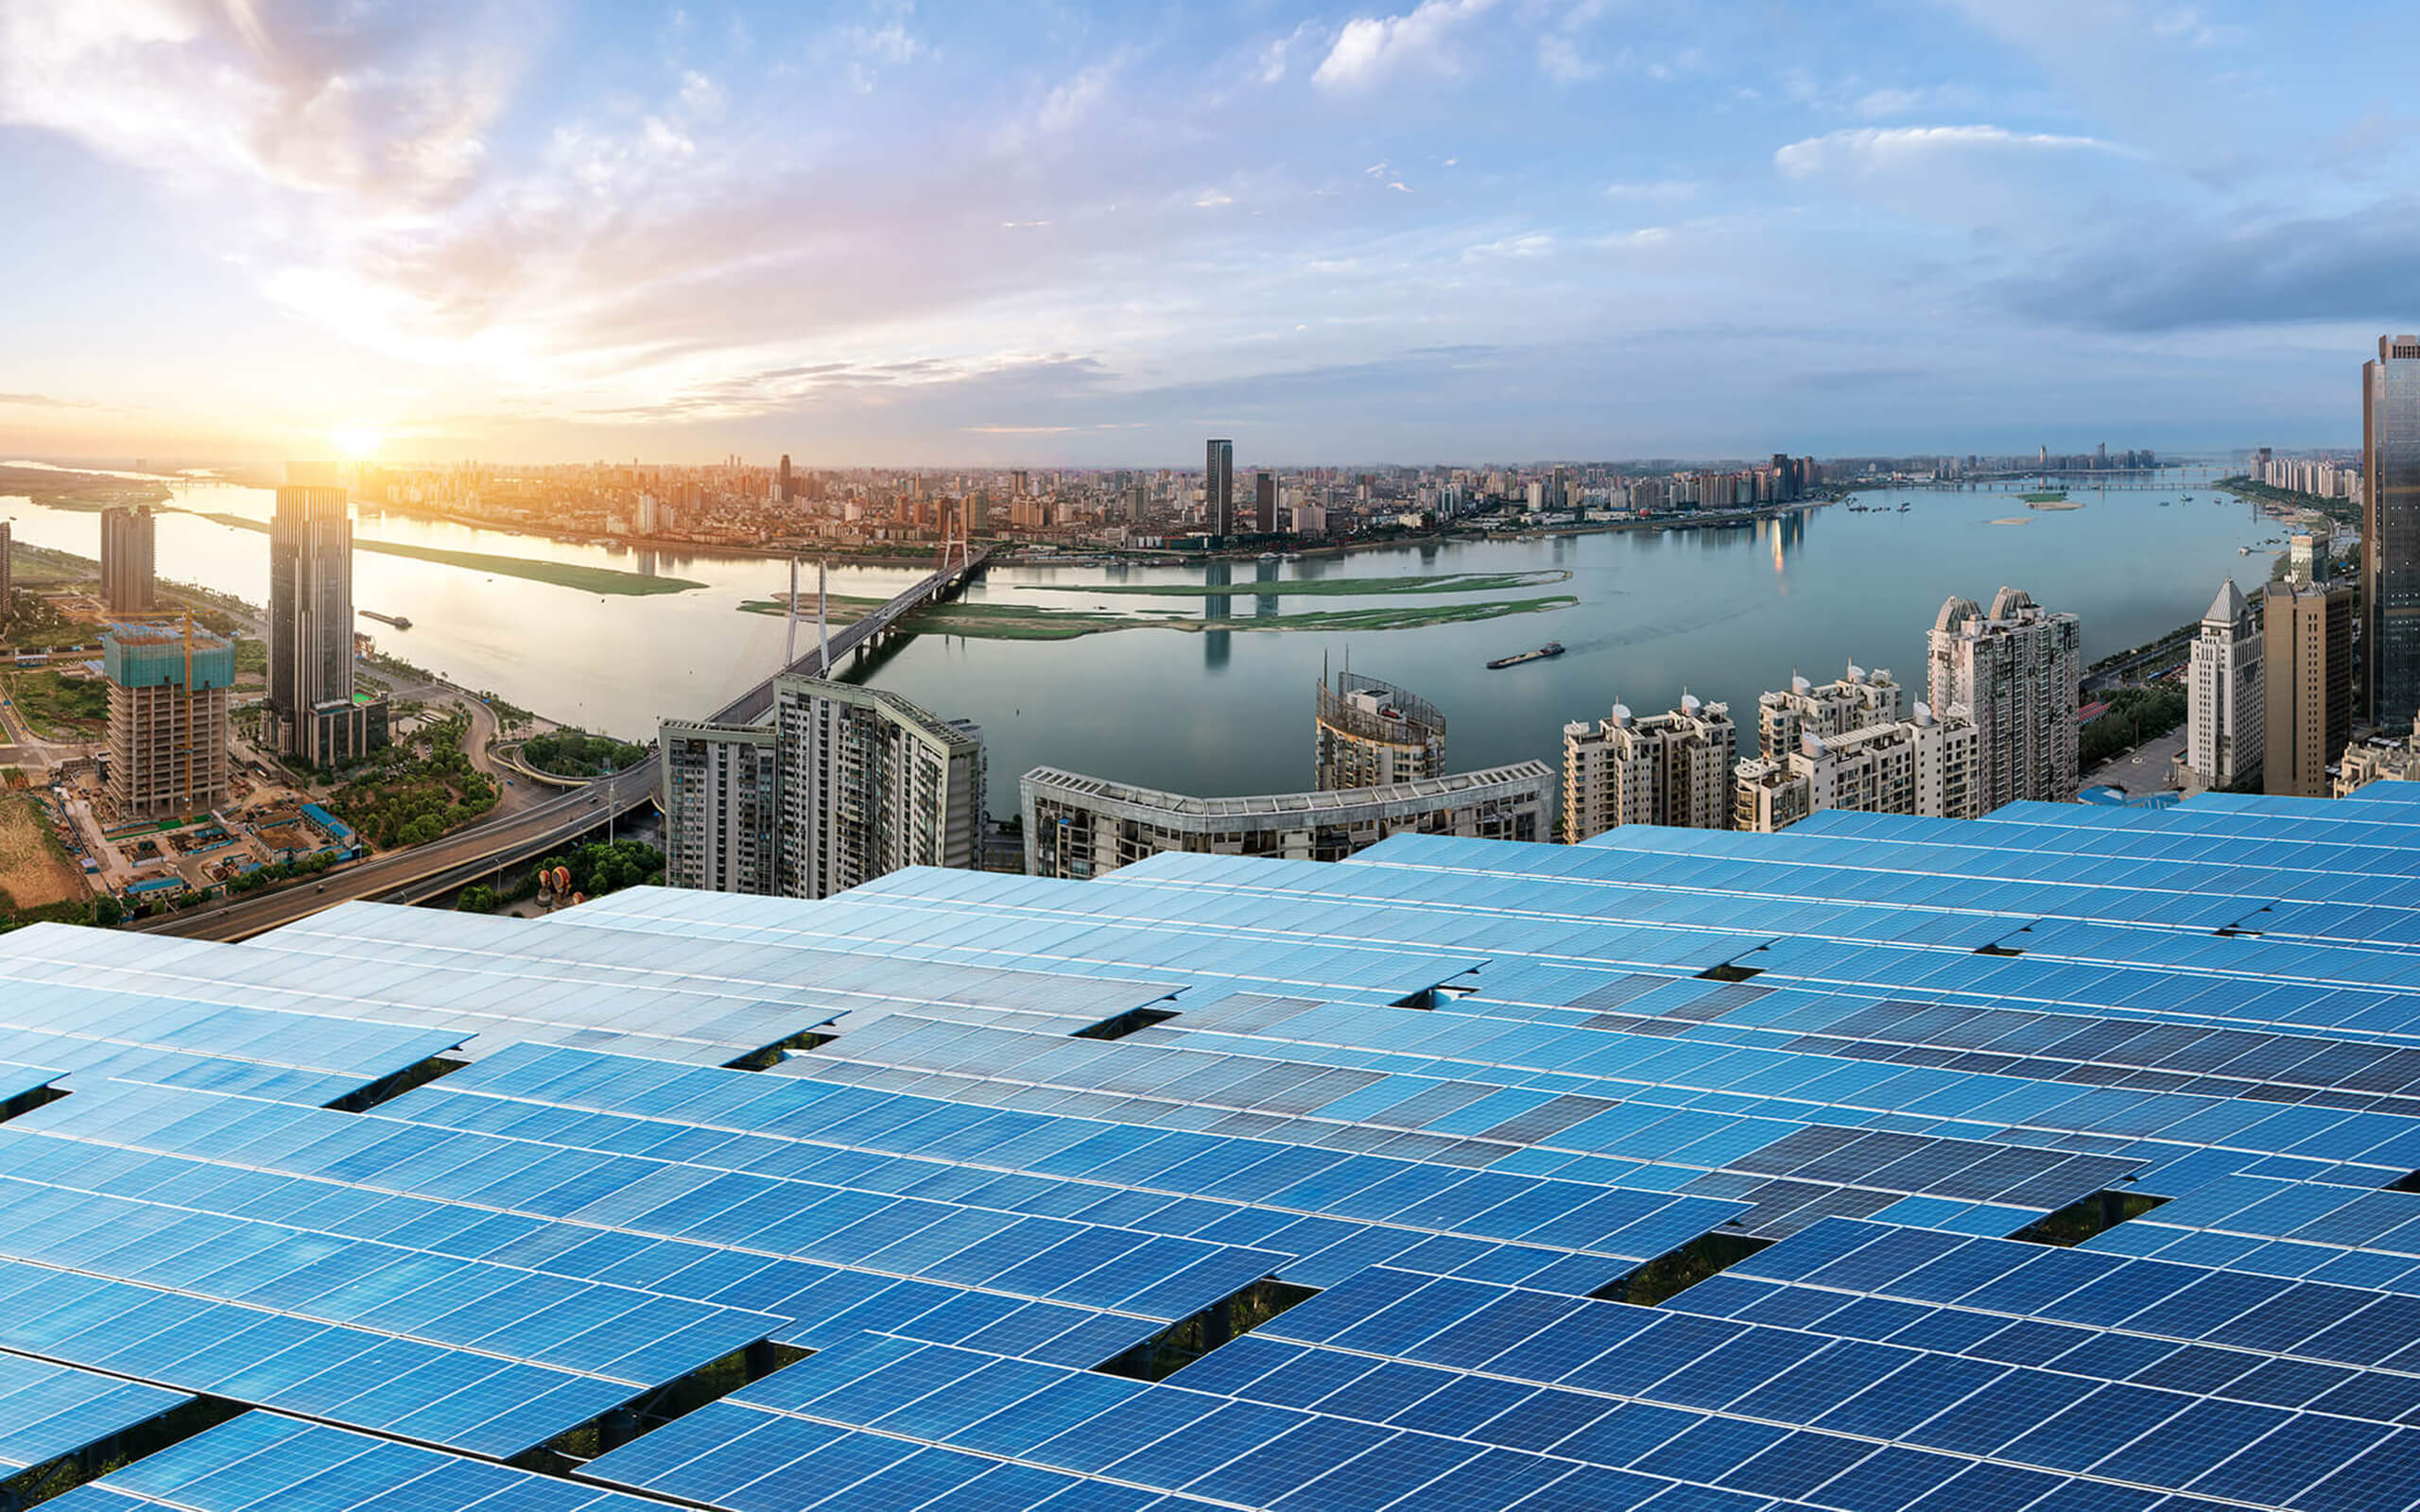 Solar panels in focus with a large city in view behind